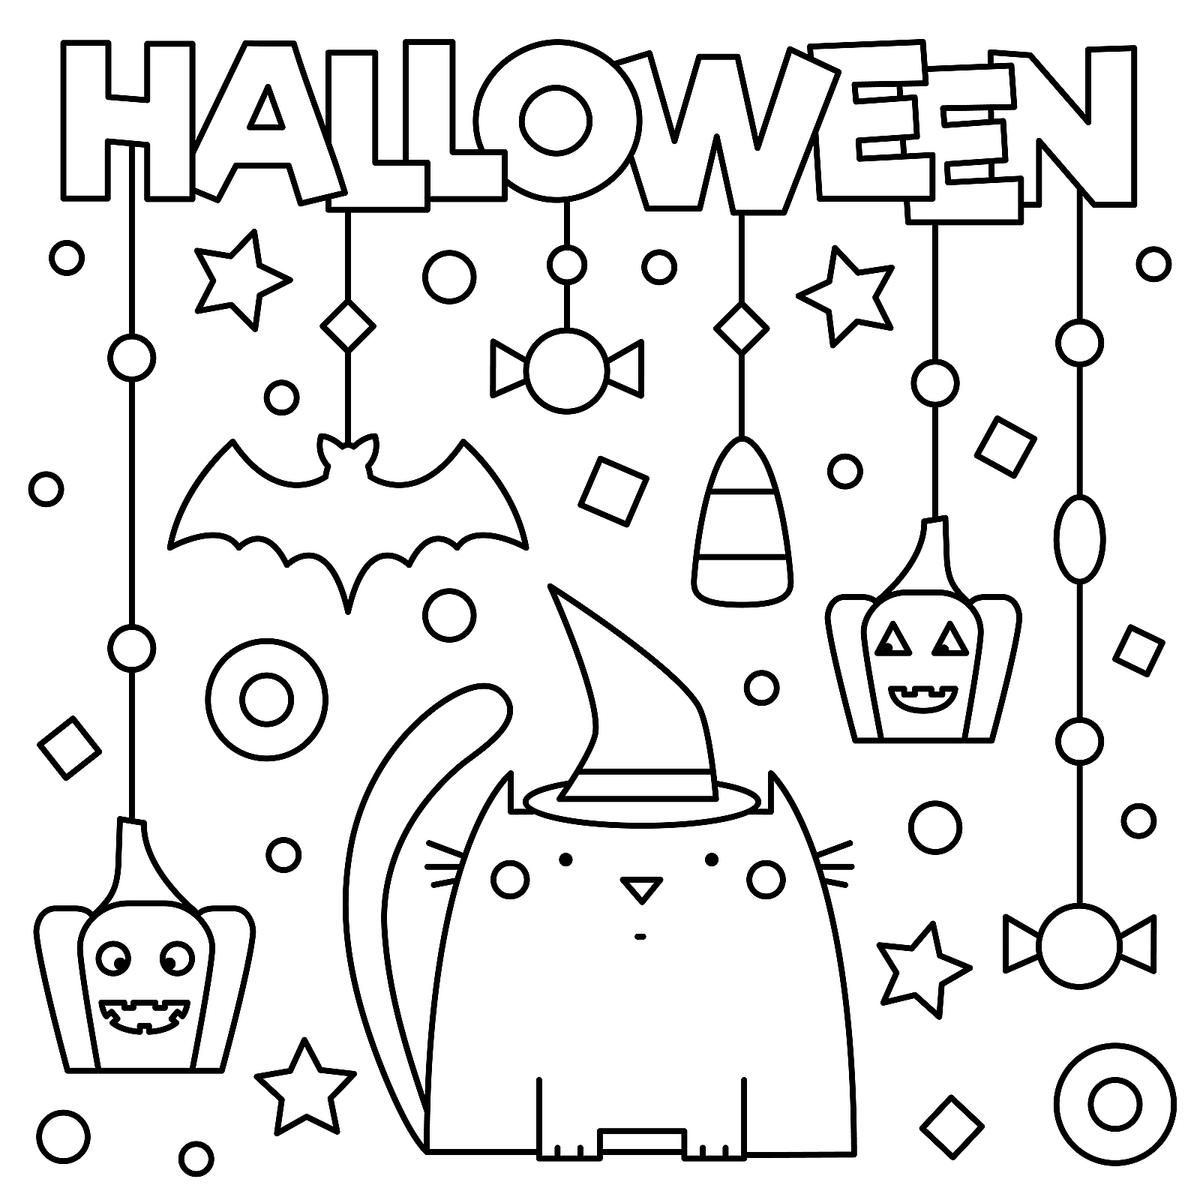 Halloween Coloring Pages 10 Free Spooky Printable Activities For Kids Printables 30seconds Mom Halloween Coloring Pages Printable Free Halloween Coloring Pages Halloween Coloring Book